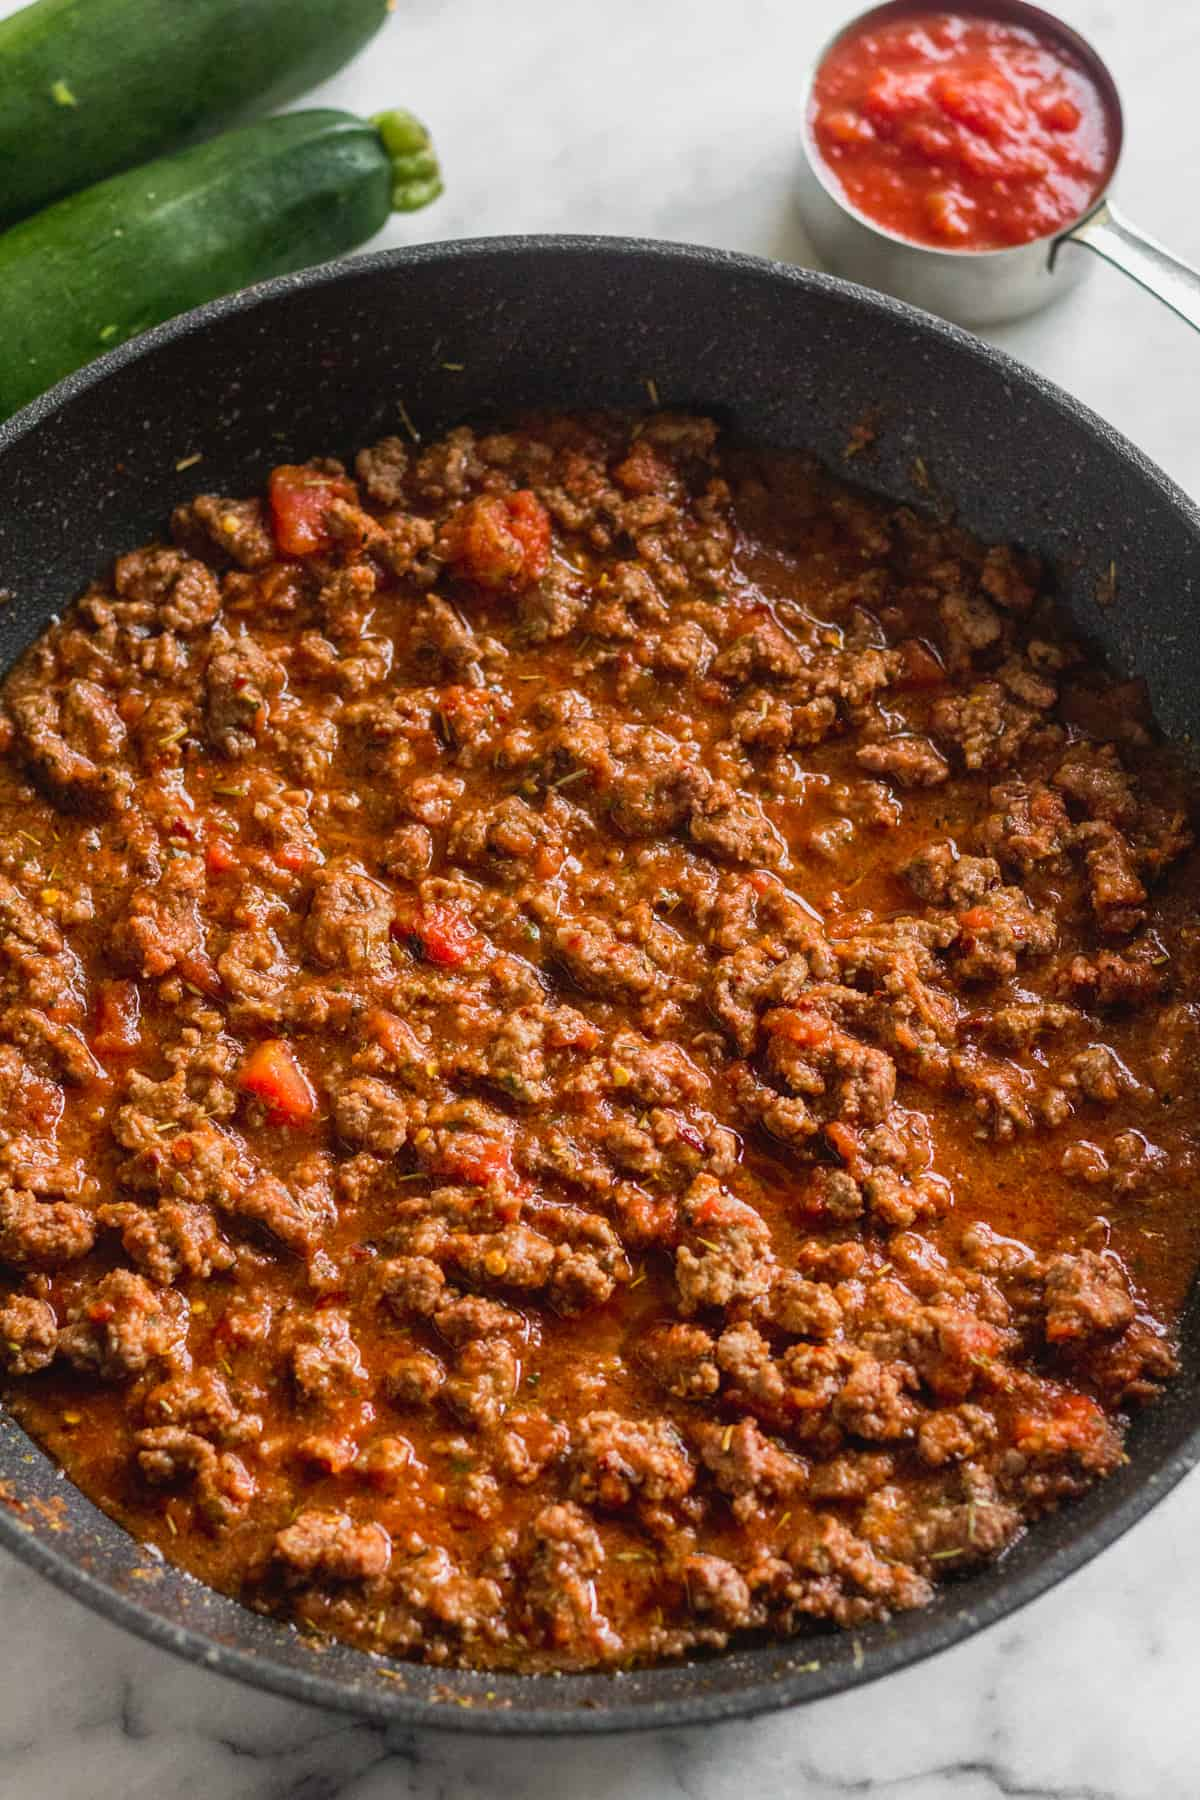 Pan filled with sautéed Italian ground beef, crushed tomatoes, and tomato sauce